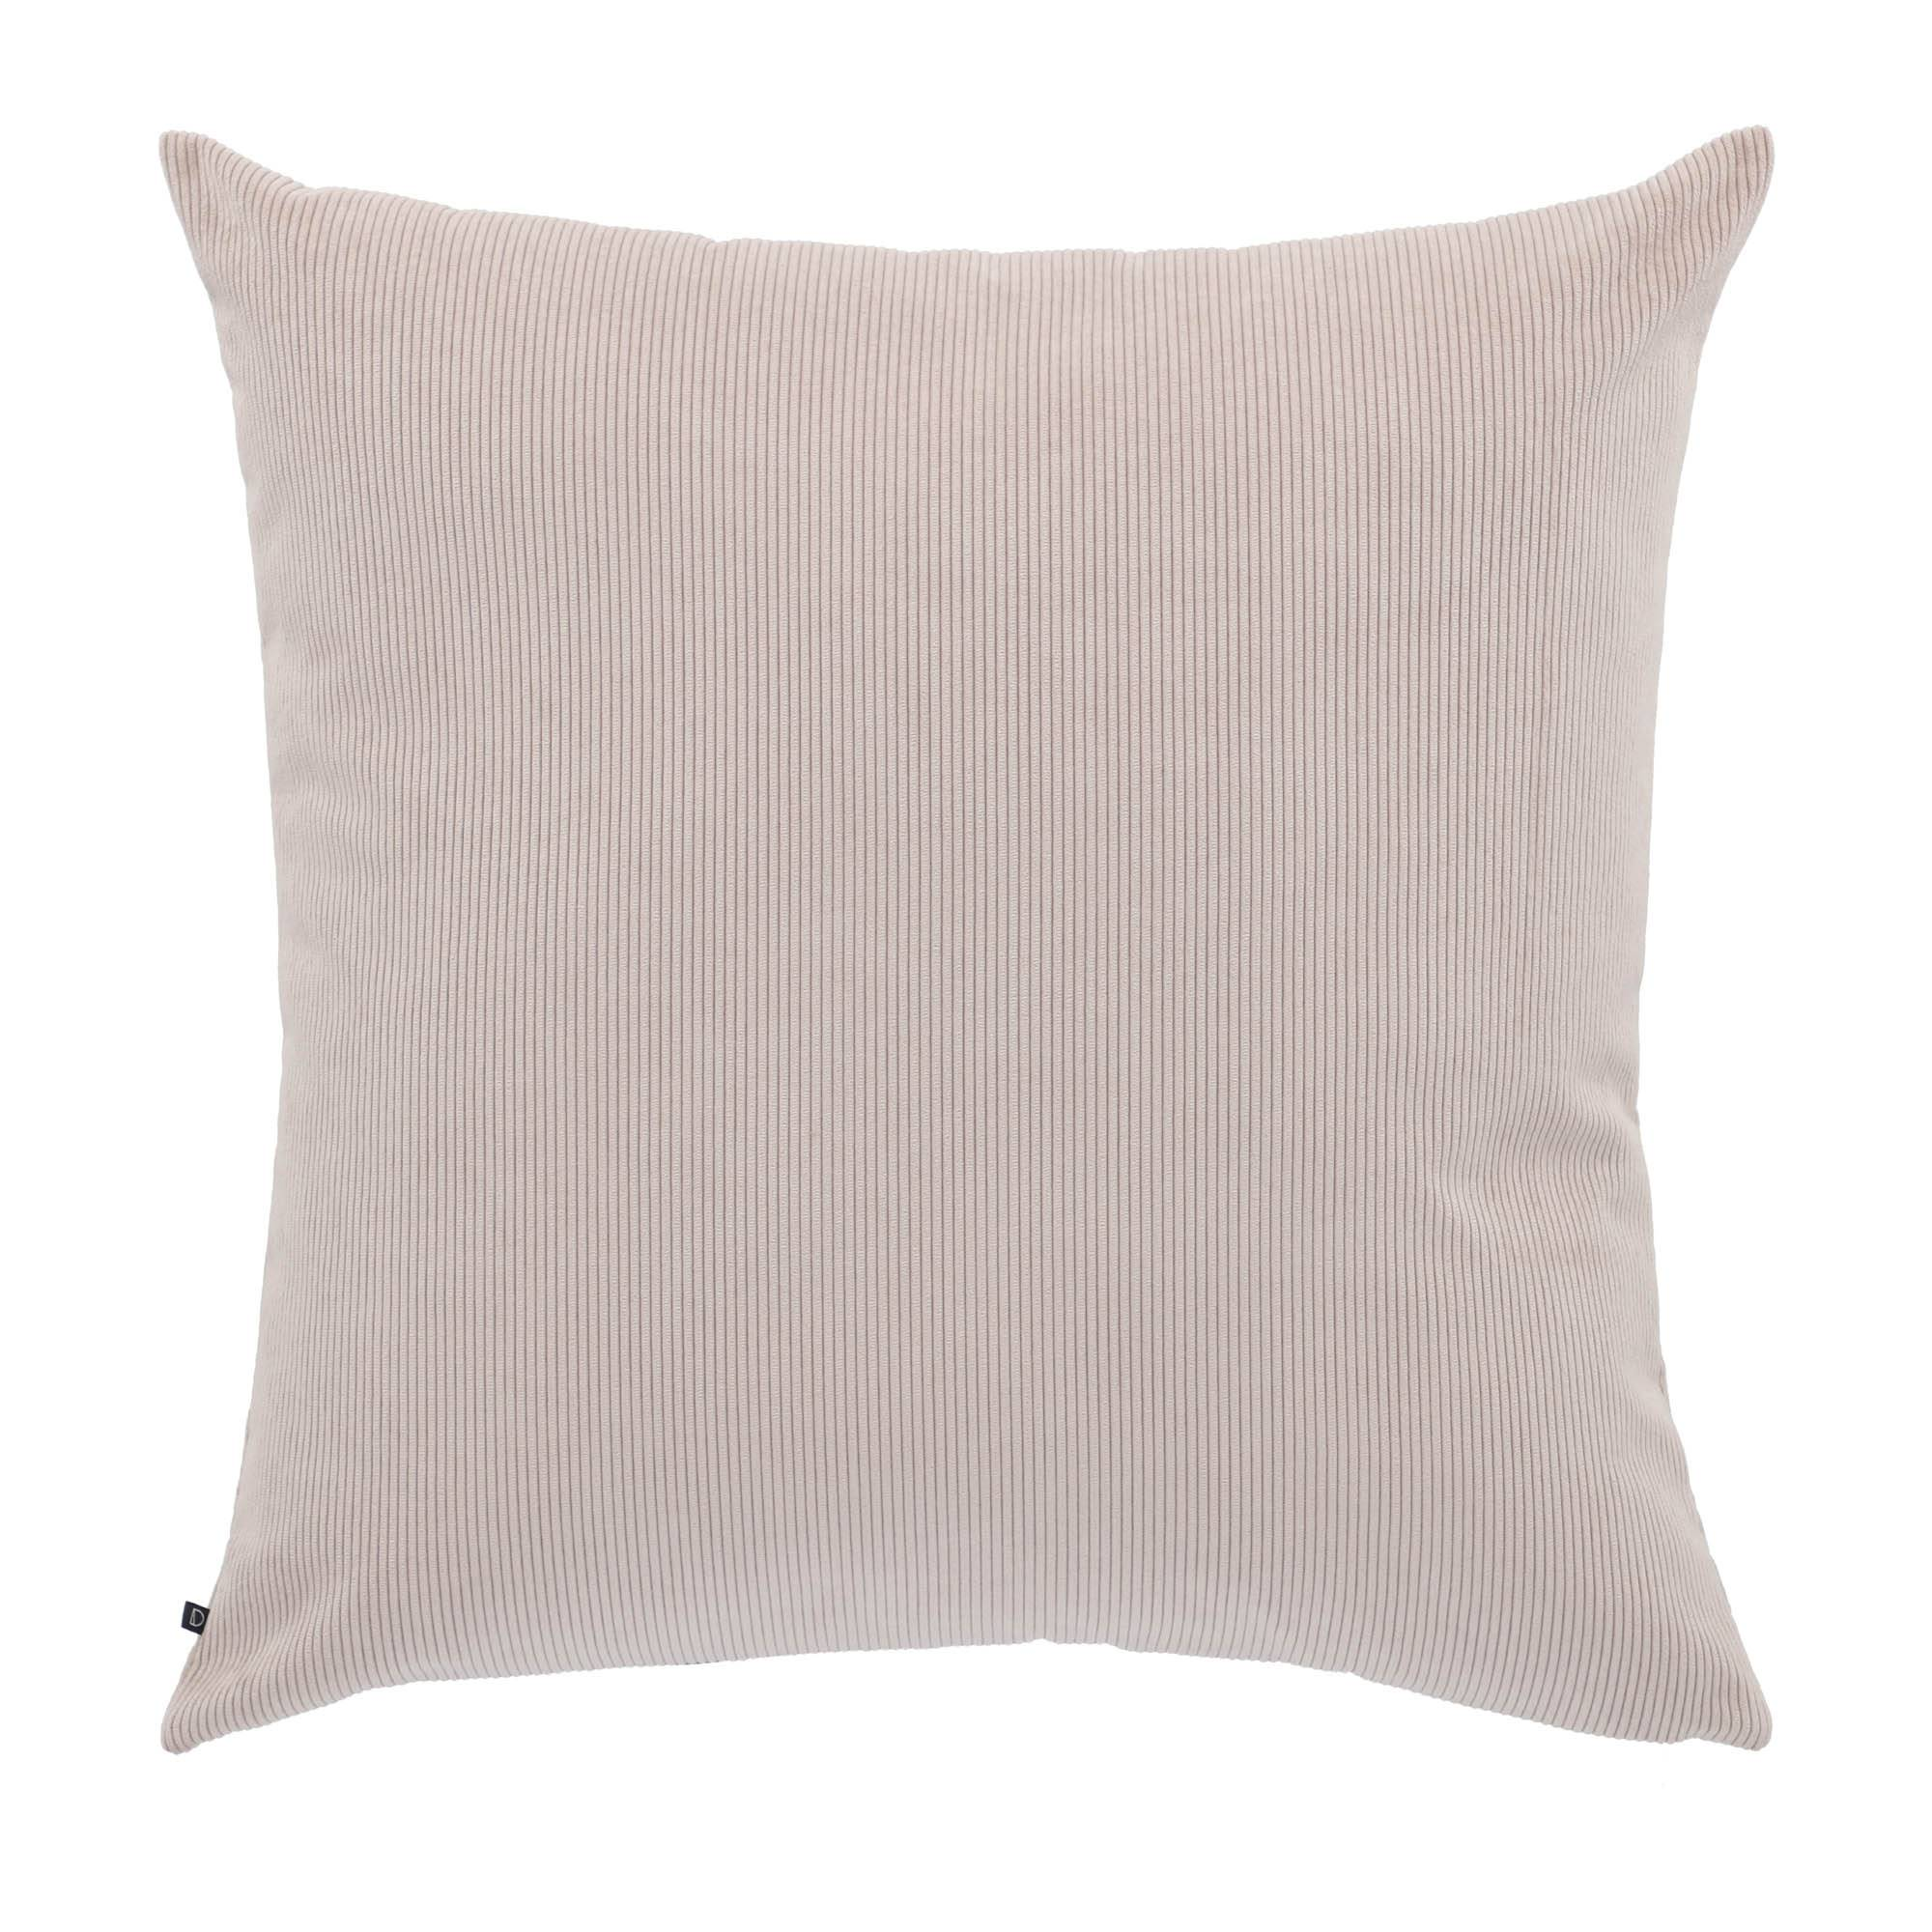 Kave Home Fodera cuscino Namie 60 x 60 cm velluto a coste rosa